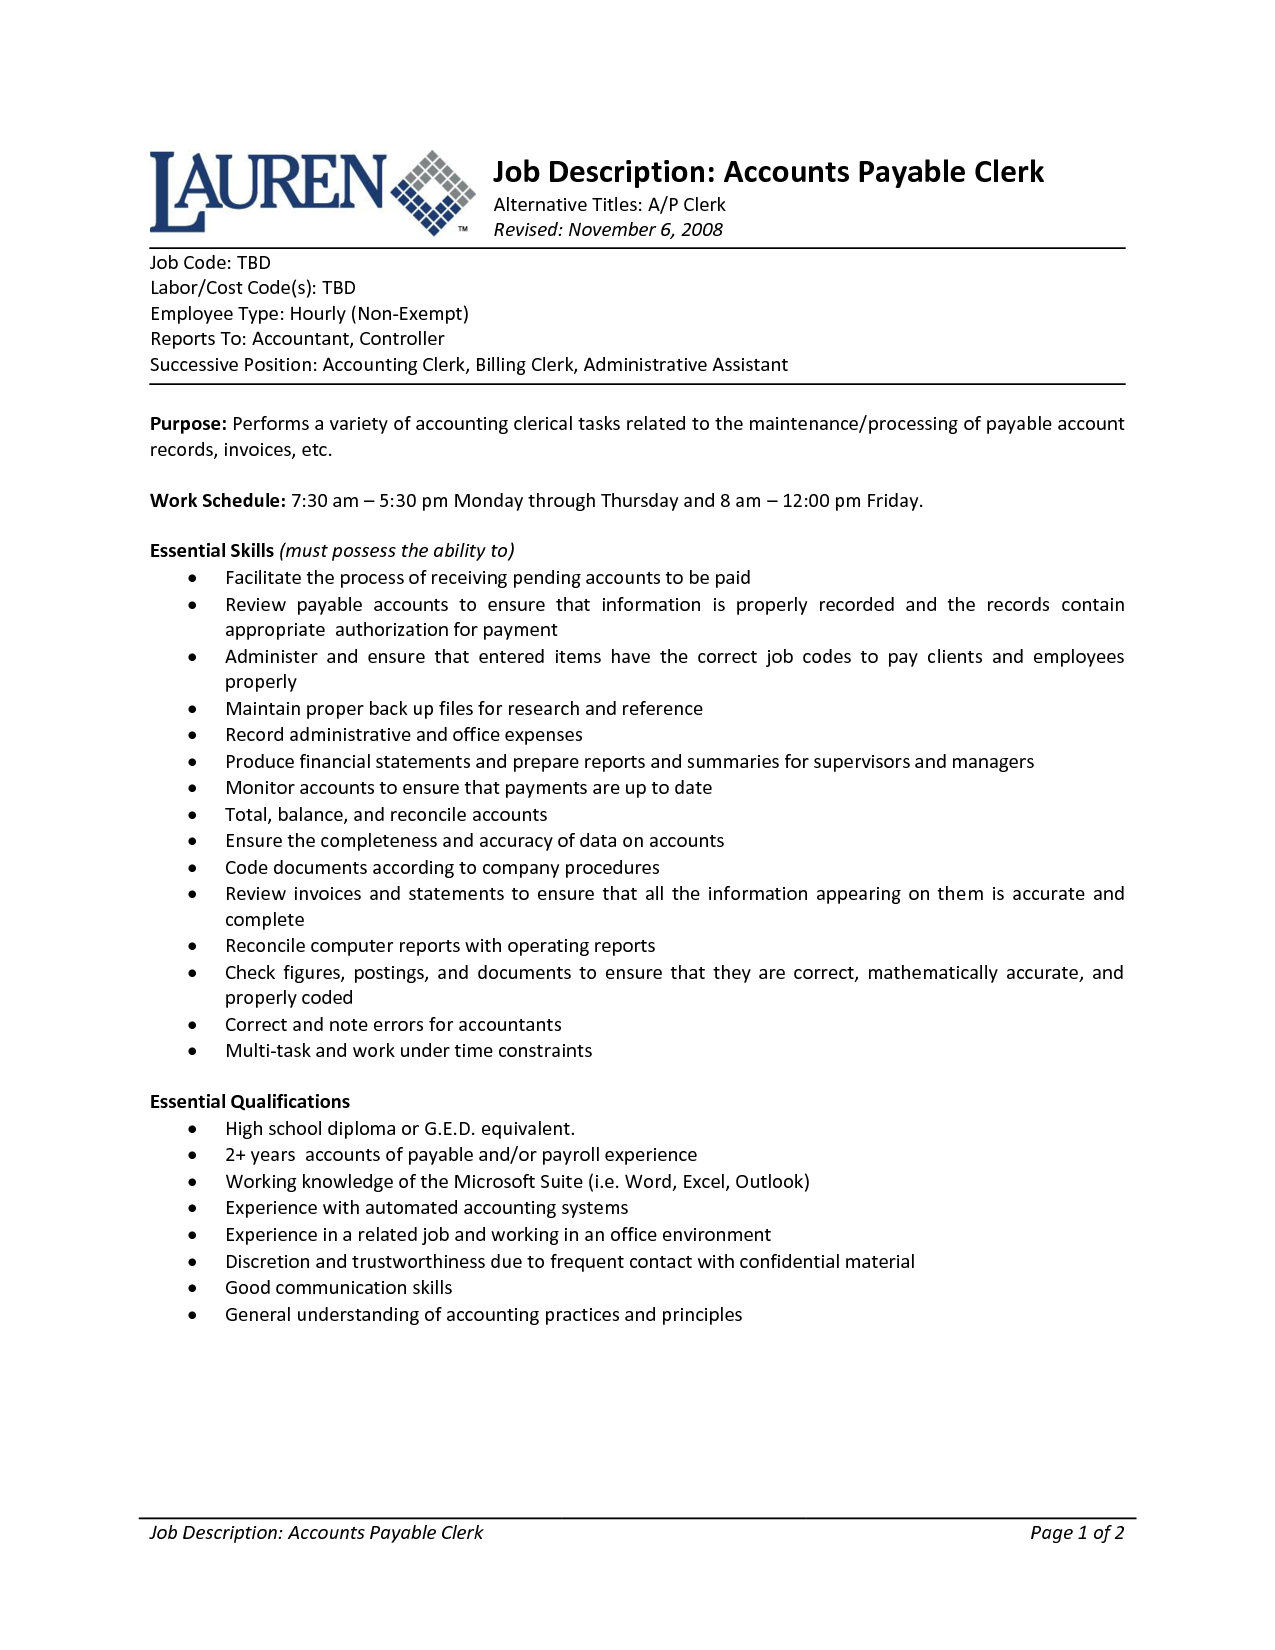 Resume Summary For Accounting Position Sample Resume For Best Business  Template  Clerical Job Description